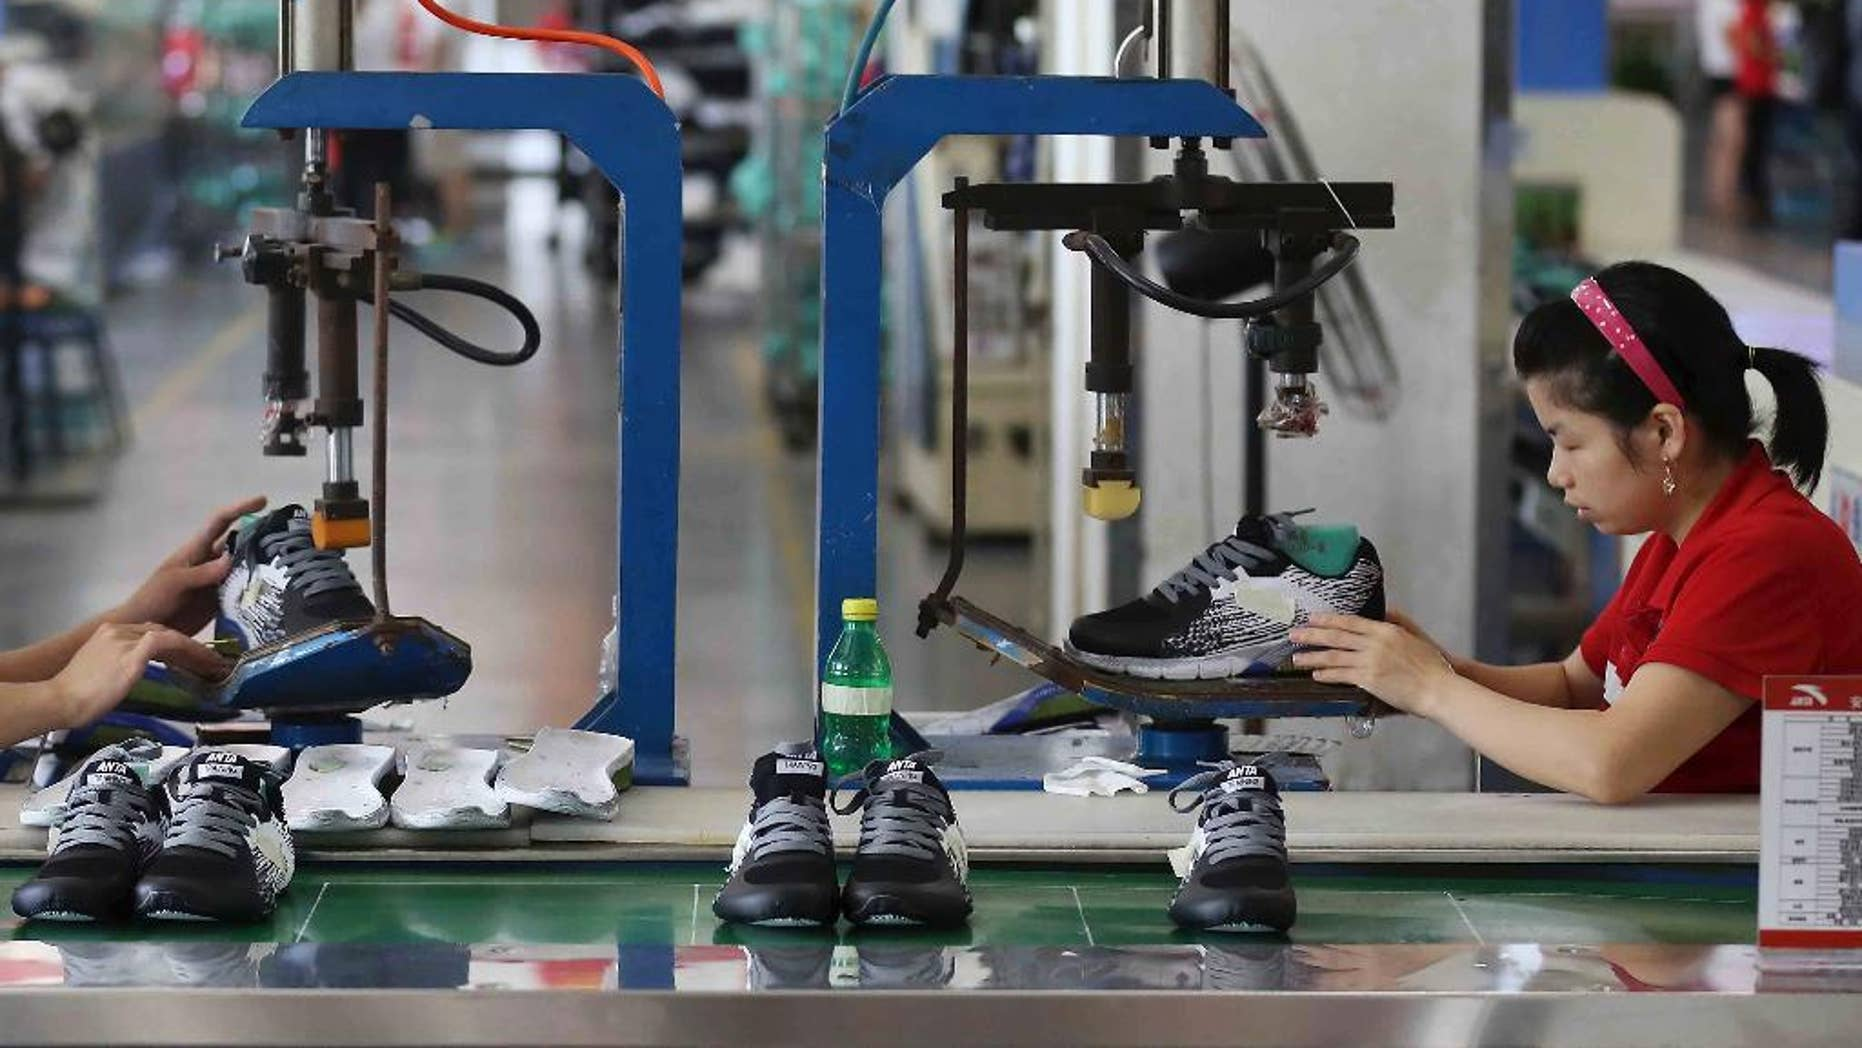 In this Wednesday, July 27, 2016 photo, workers assemble sneaker at a factory in Jinjiang city in southeast China's Fujian province. Two surveys show Chinese manufacturing activity in July was weak but better than some forecasters expected. A business magazine, Caixin, said Monday, Aug. 1, 2016 its purchasing managers index rose to 50.6 from June's 48.6 on a 100-point scale on which numbers above 50 show activity expanding. The China Federation of Logistics and Purchasing, an industry group, said its separate PMI edged down to 49.9 from June's 50. (Chinatopix Via AP)